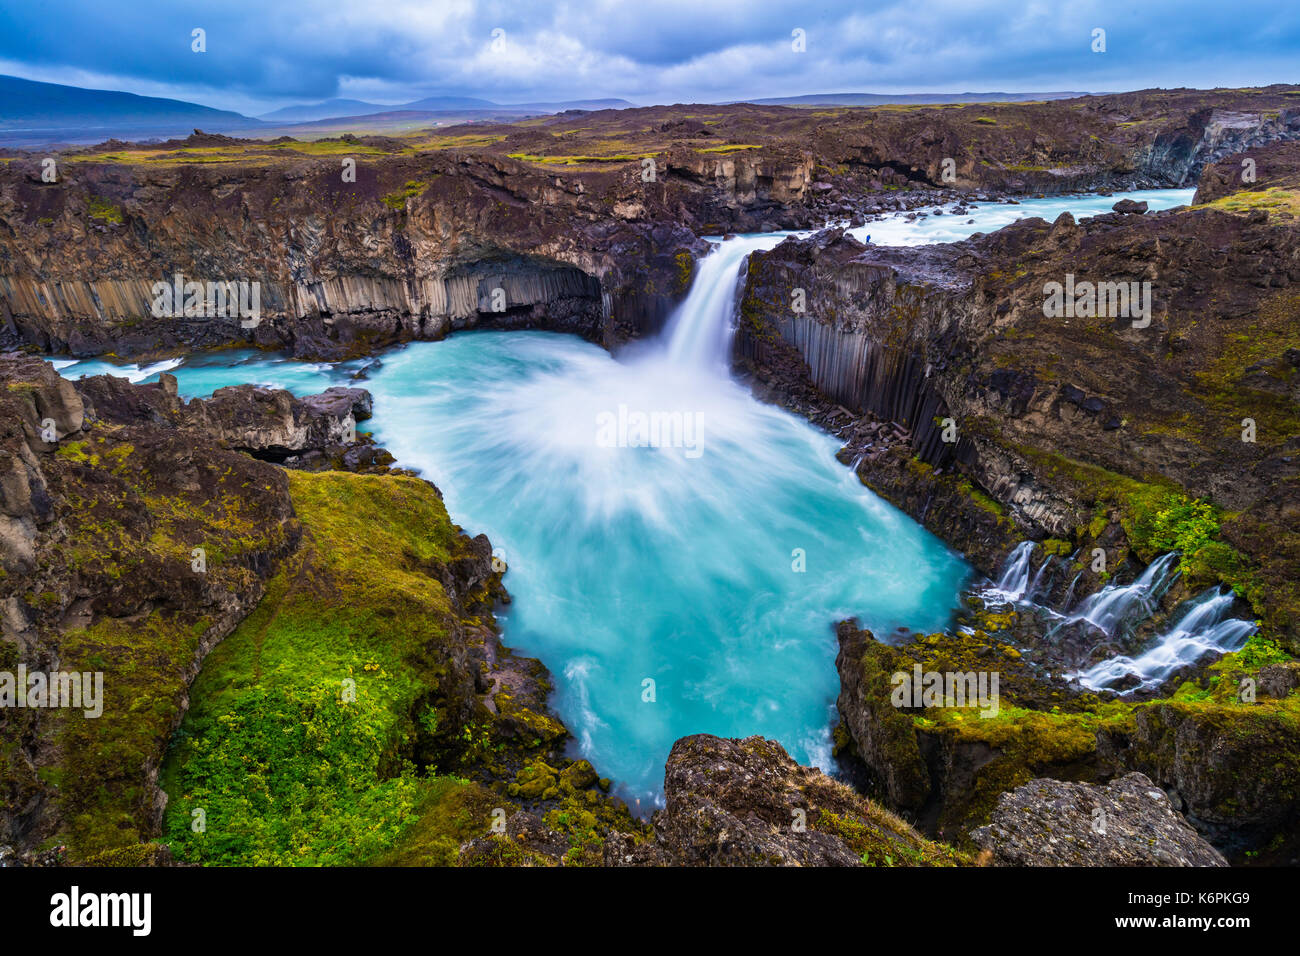 The Aldeyjarfoss waterfall is situated in the north of Iceland at the northern part of the Sprengisandur Highland Road in Iceland - Stock Image